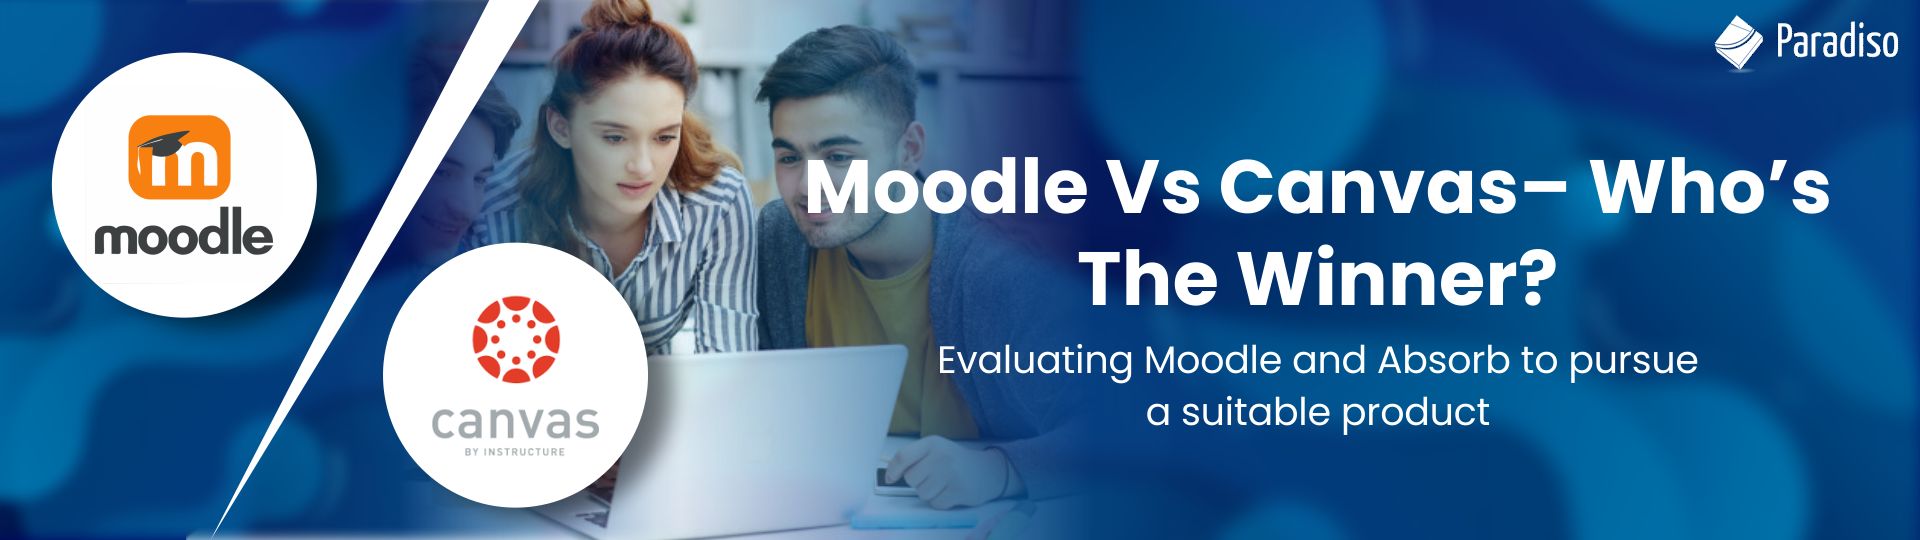 Moodle vs Canvas